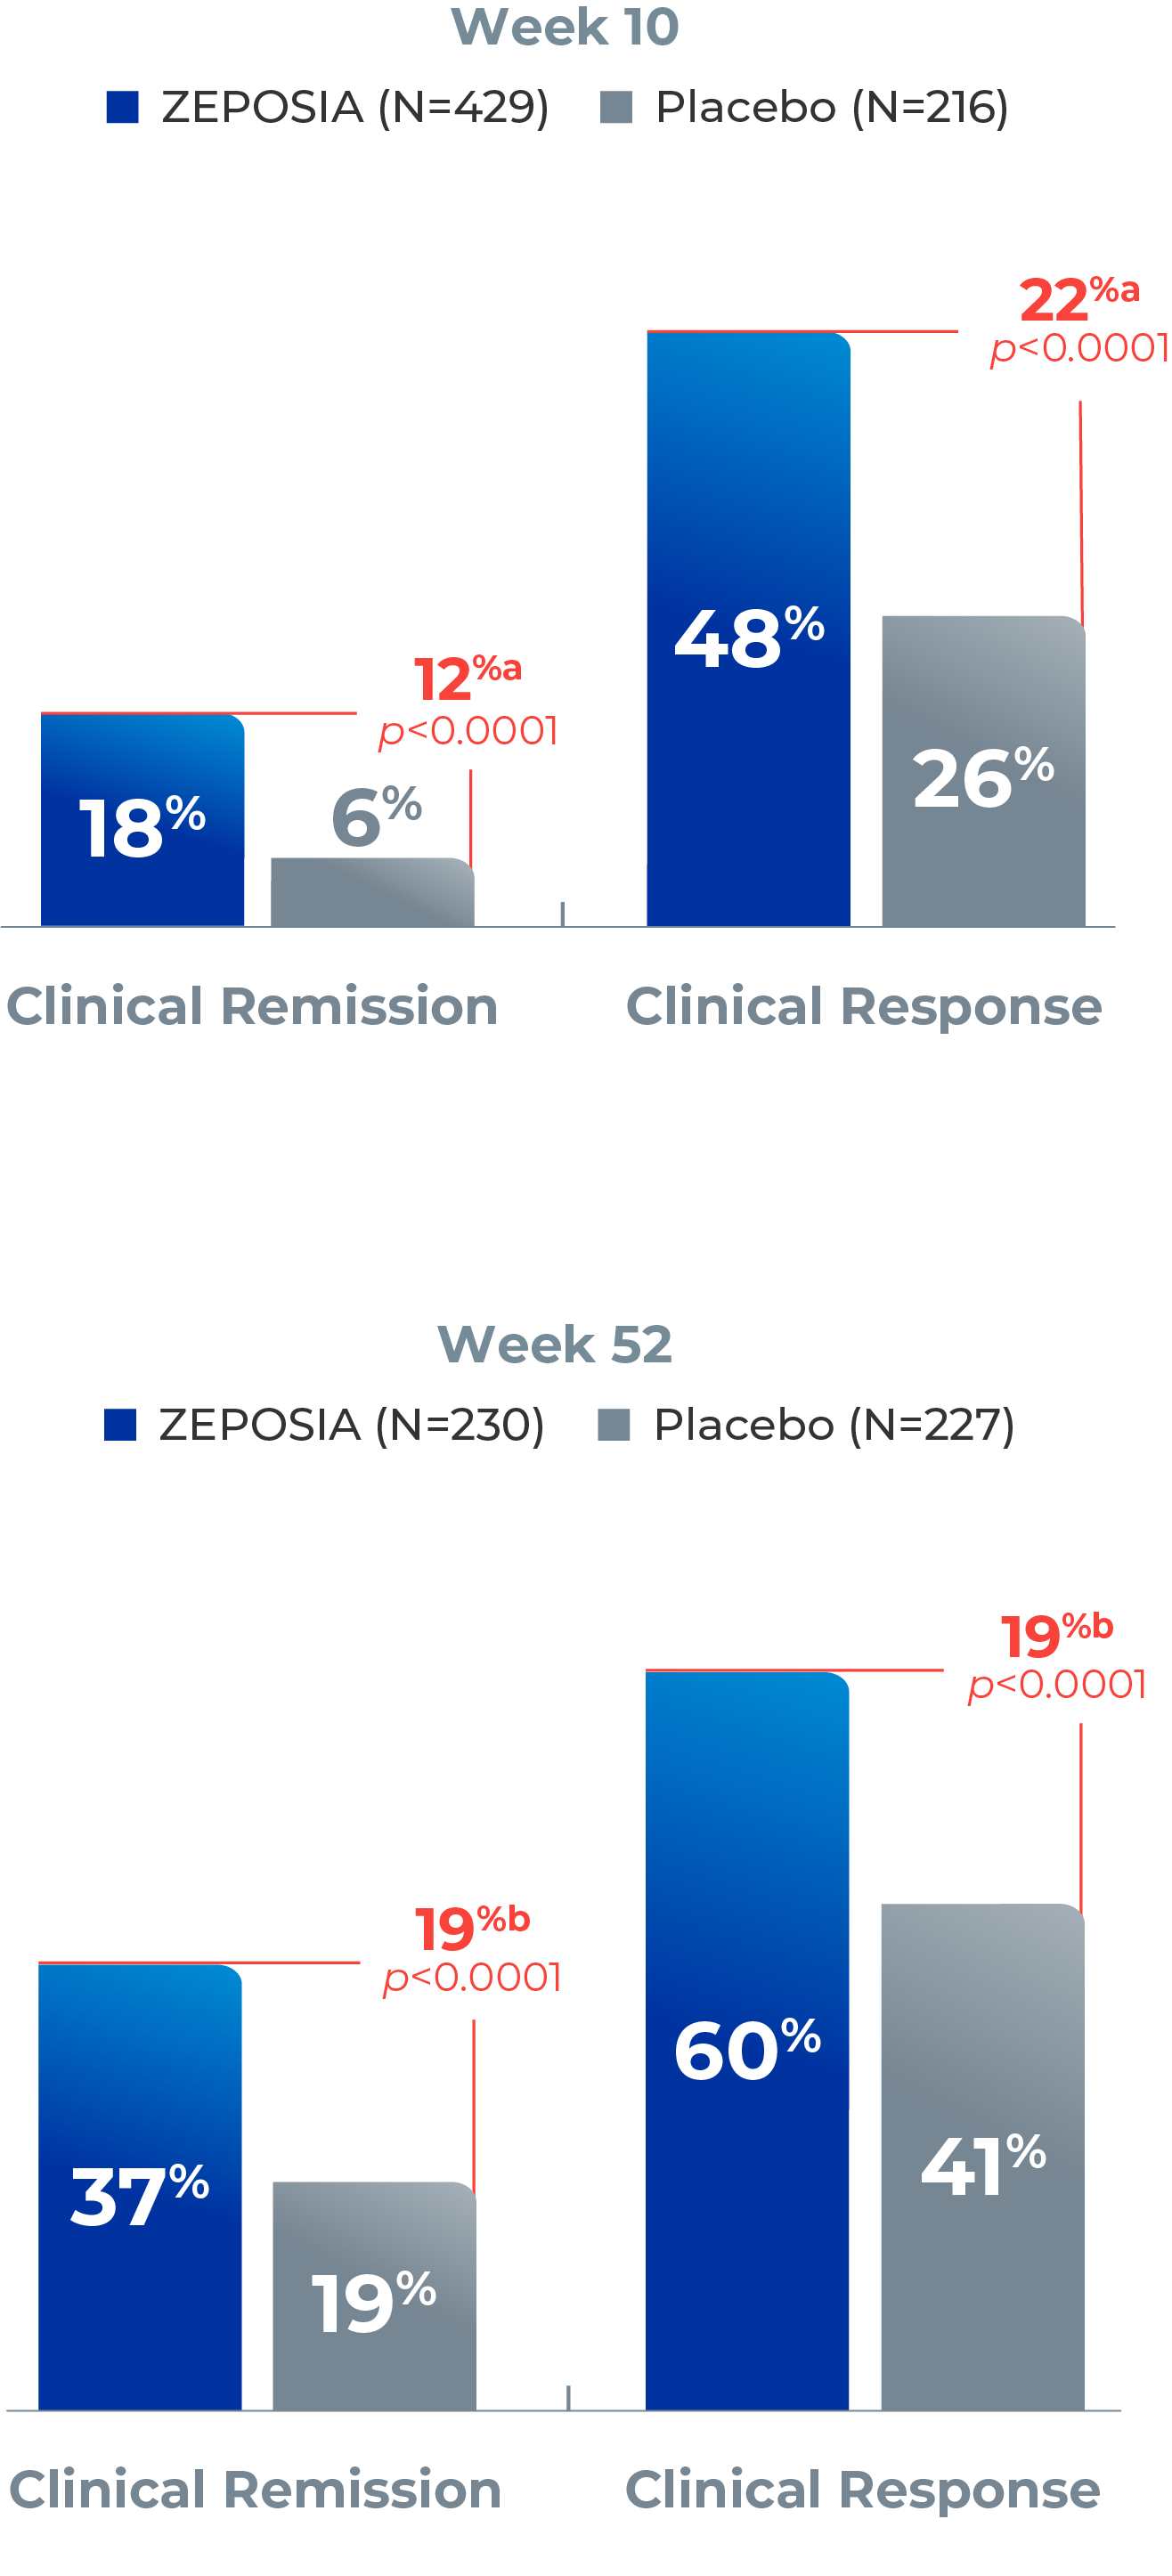 ZEPOSIA for ulcerative colitis - clinical remission and clinical response rates chart